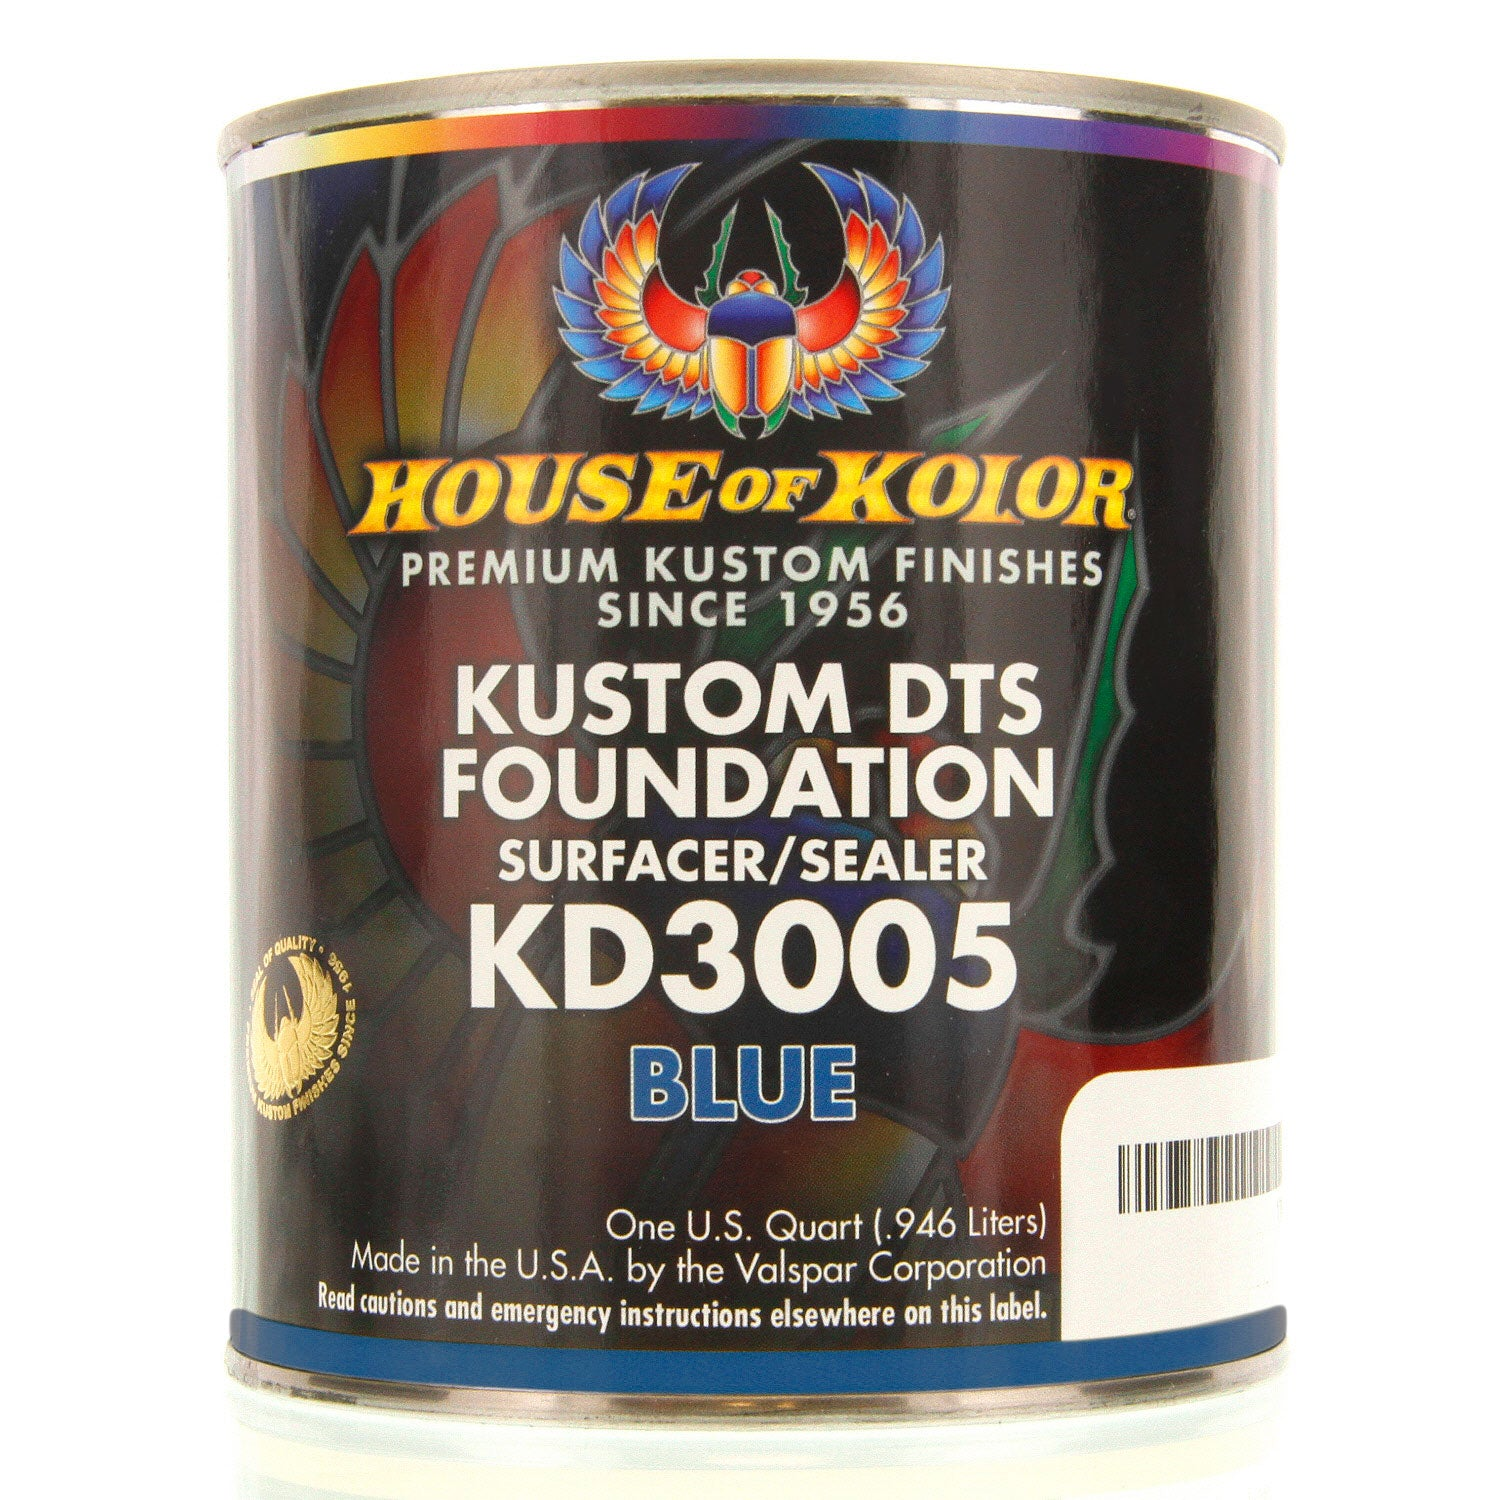 Blue - Custom Dts Foundation Surfacer Sealer Epoxy Primer, 1 Quart House of Kolor